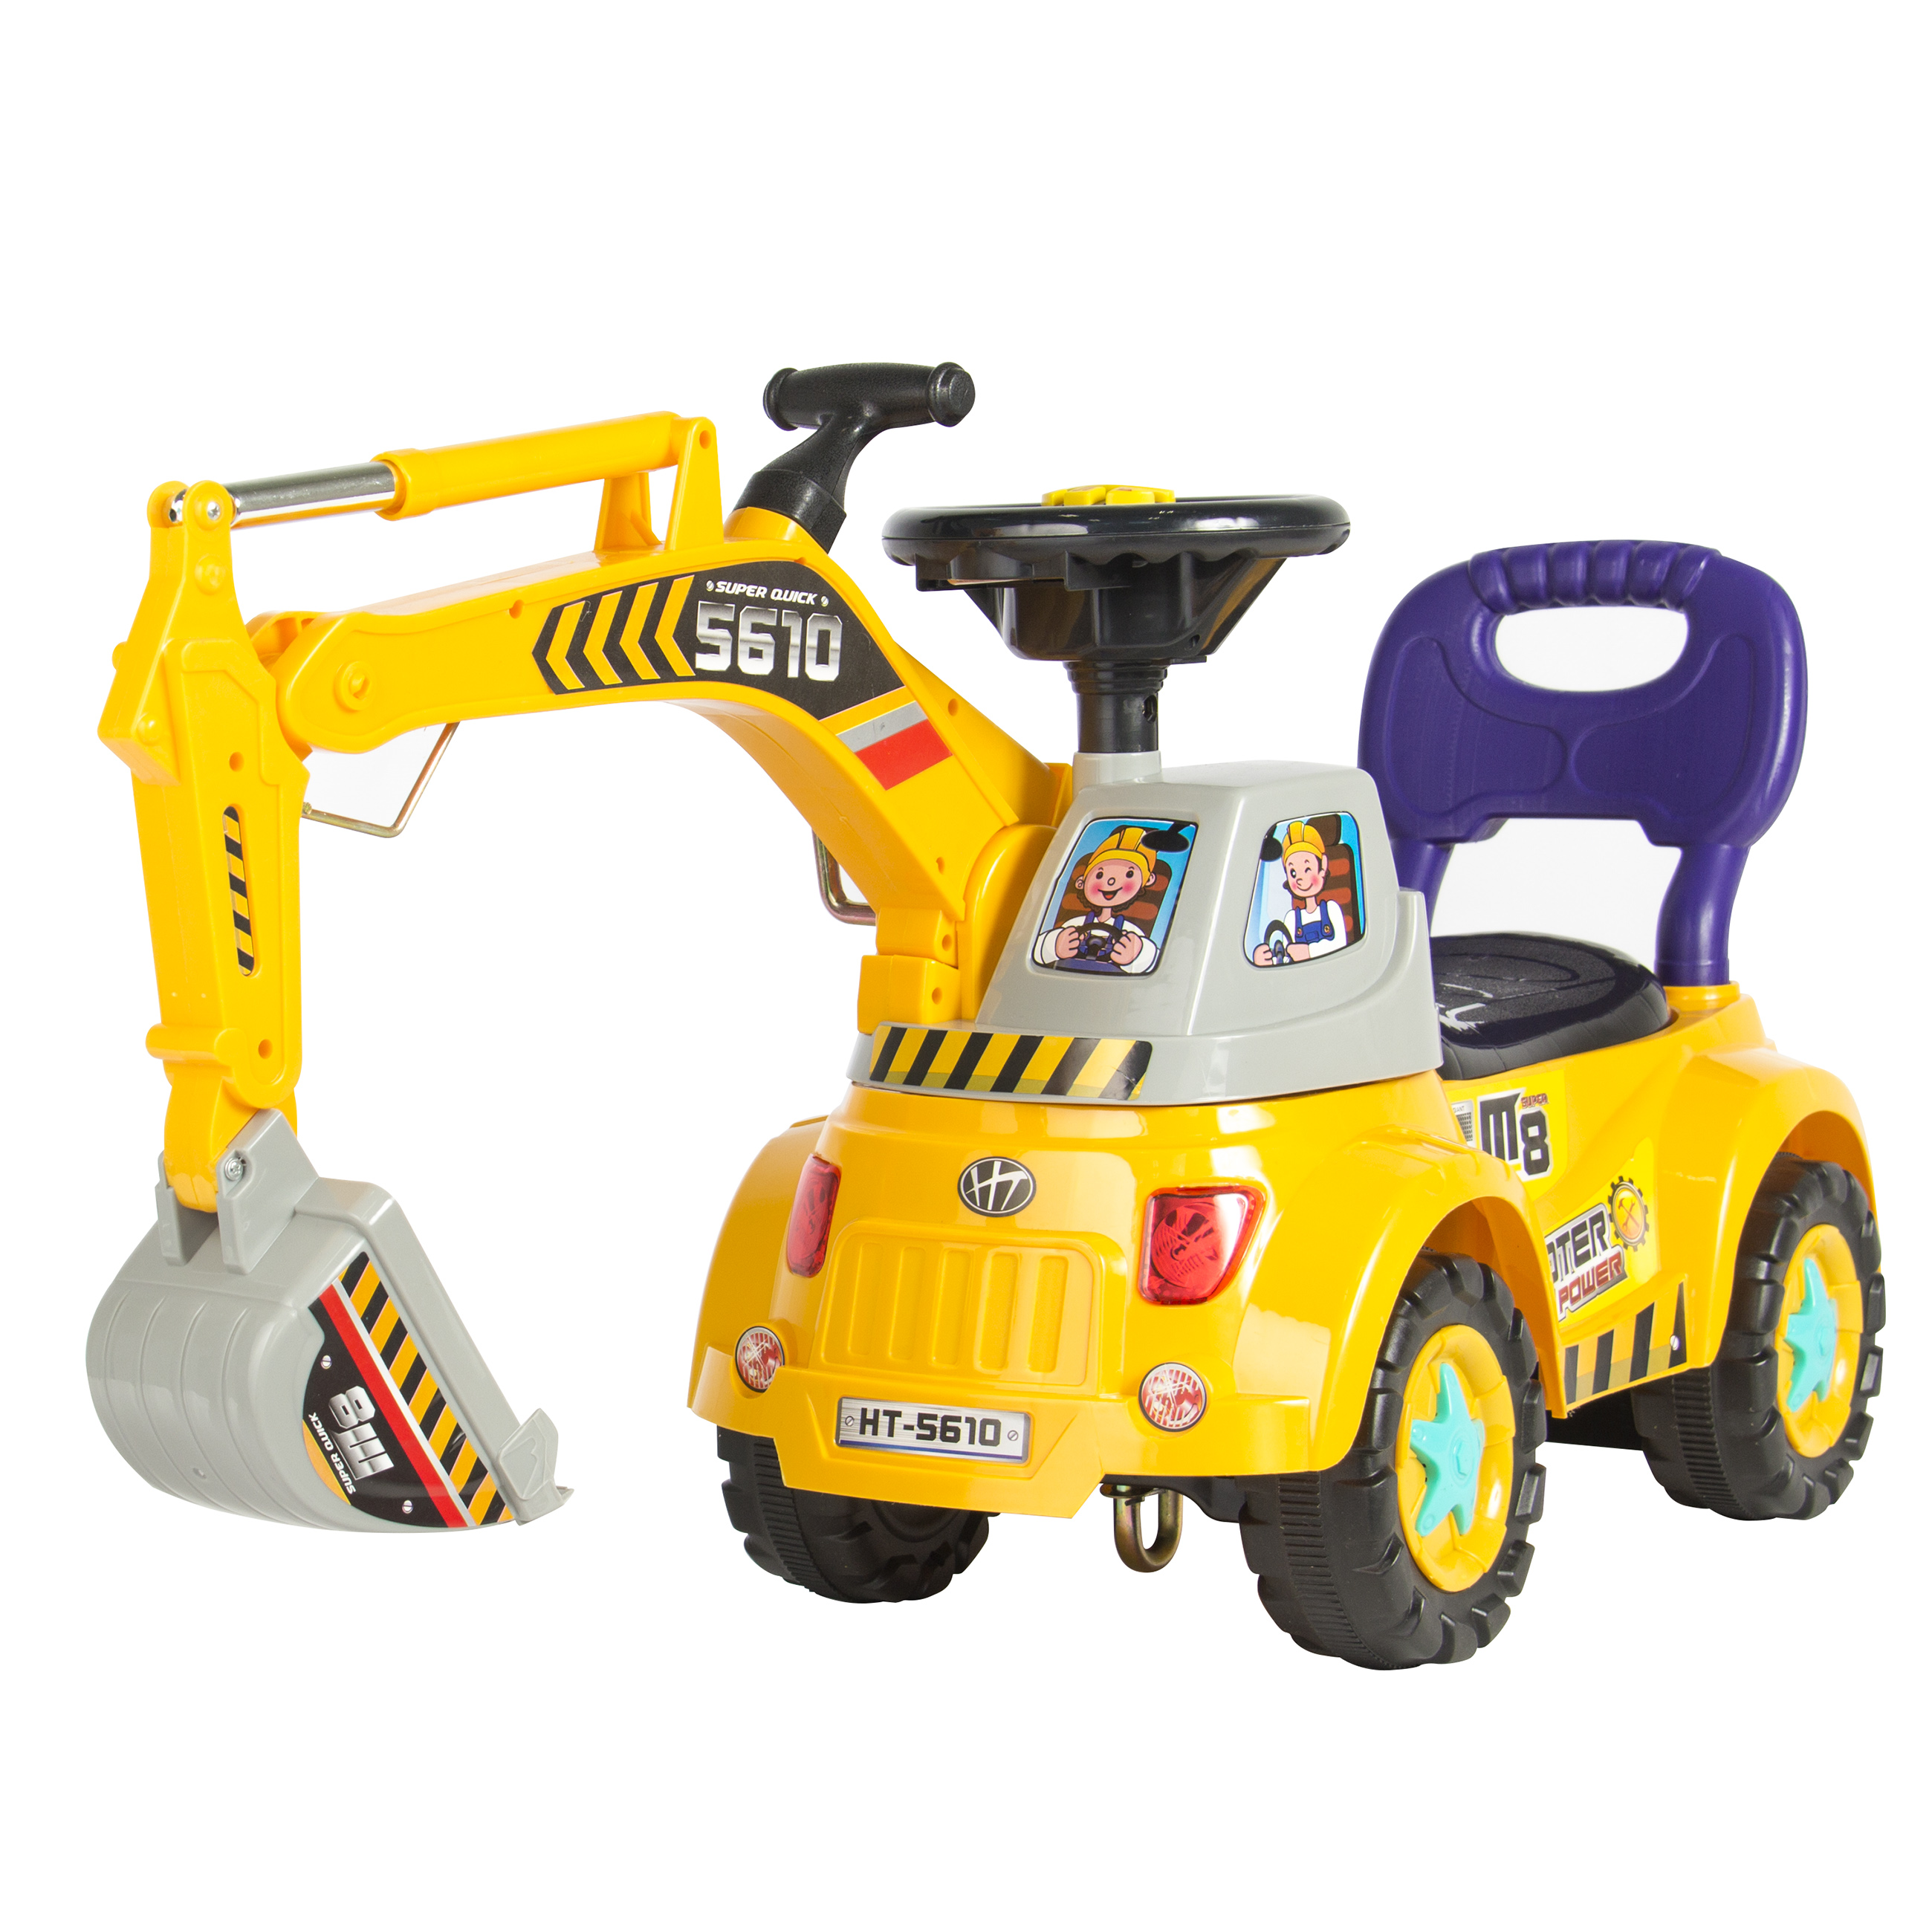 Best Choice Products Ride-On Excavator Digger Scooter Pulling Cart Pretend Play... by Best Choice Products